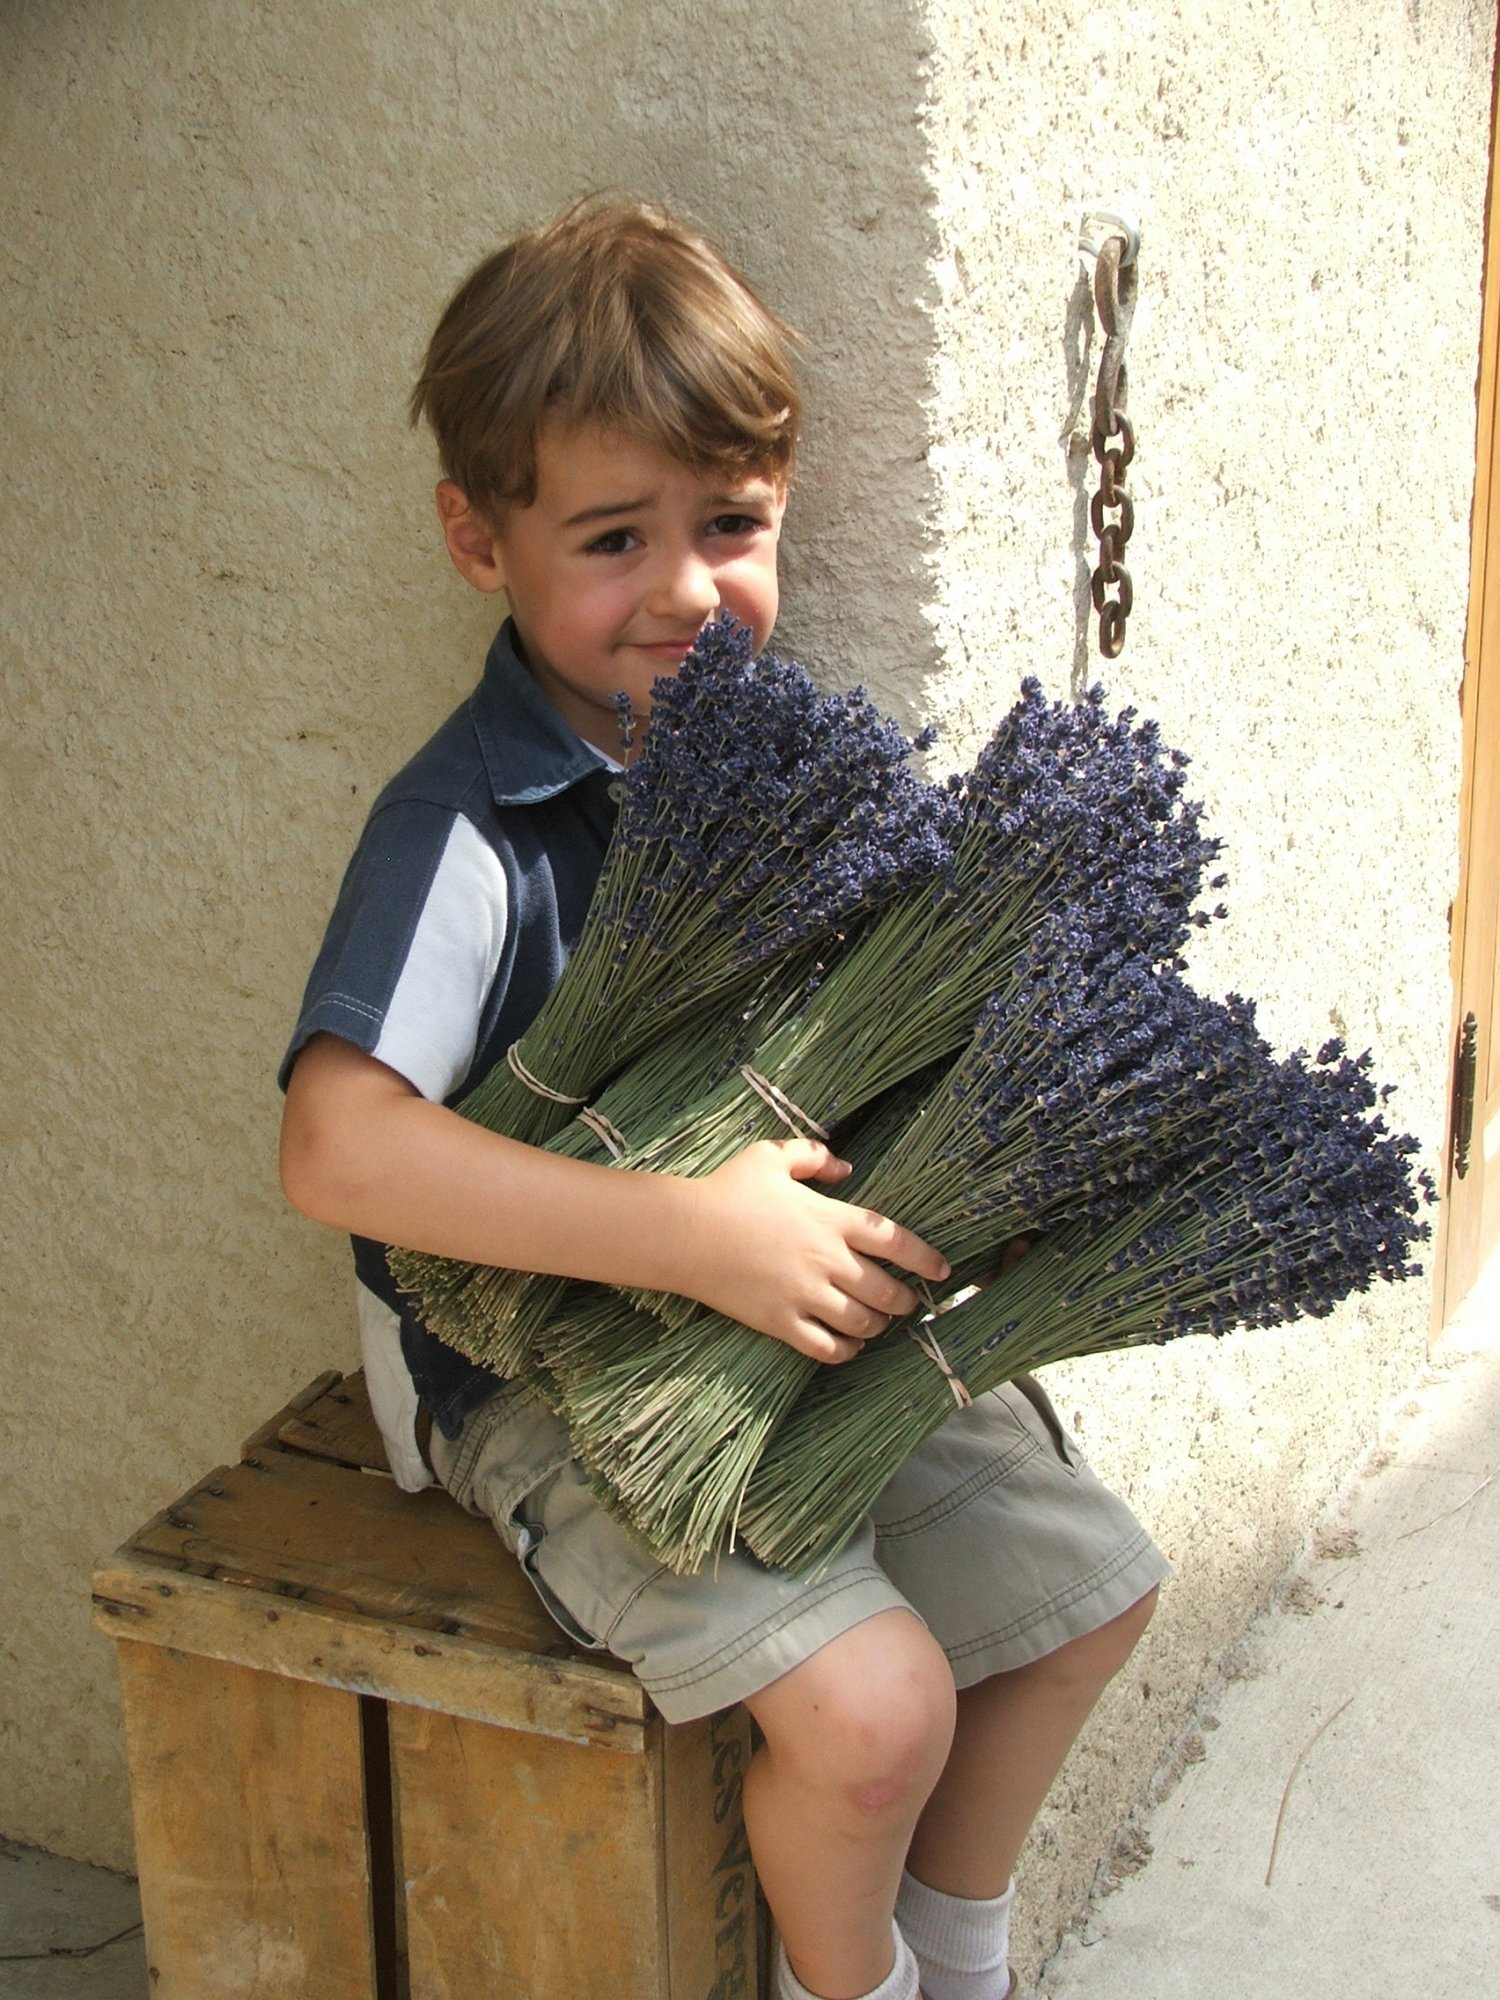 La Verriere Lavender collecting